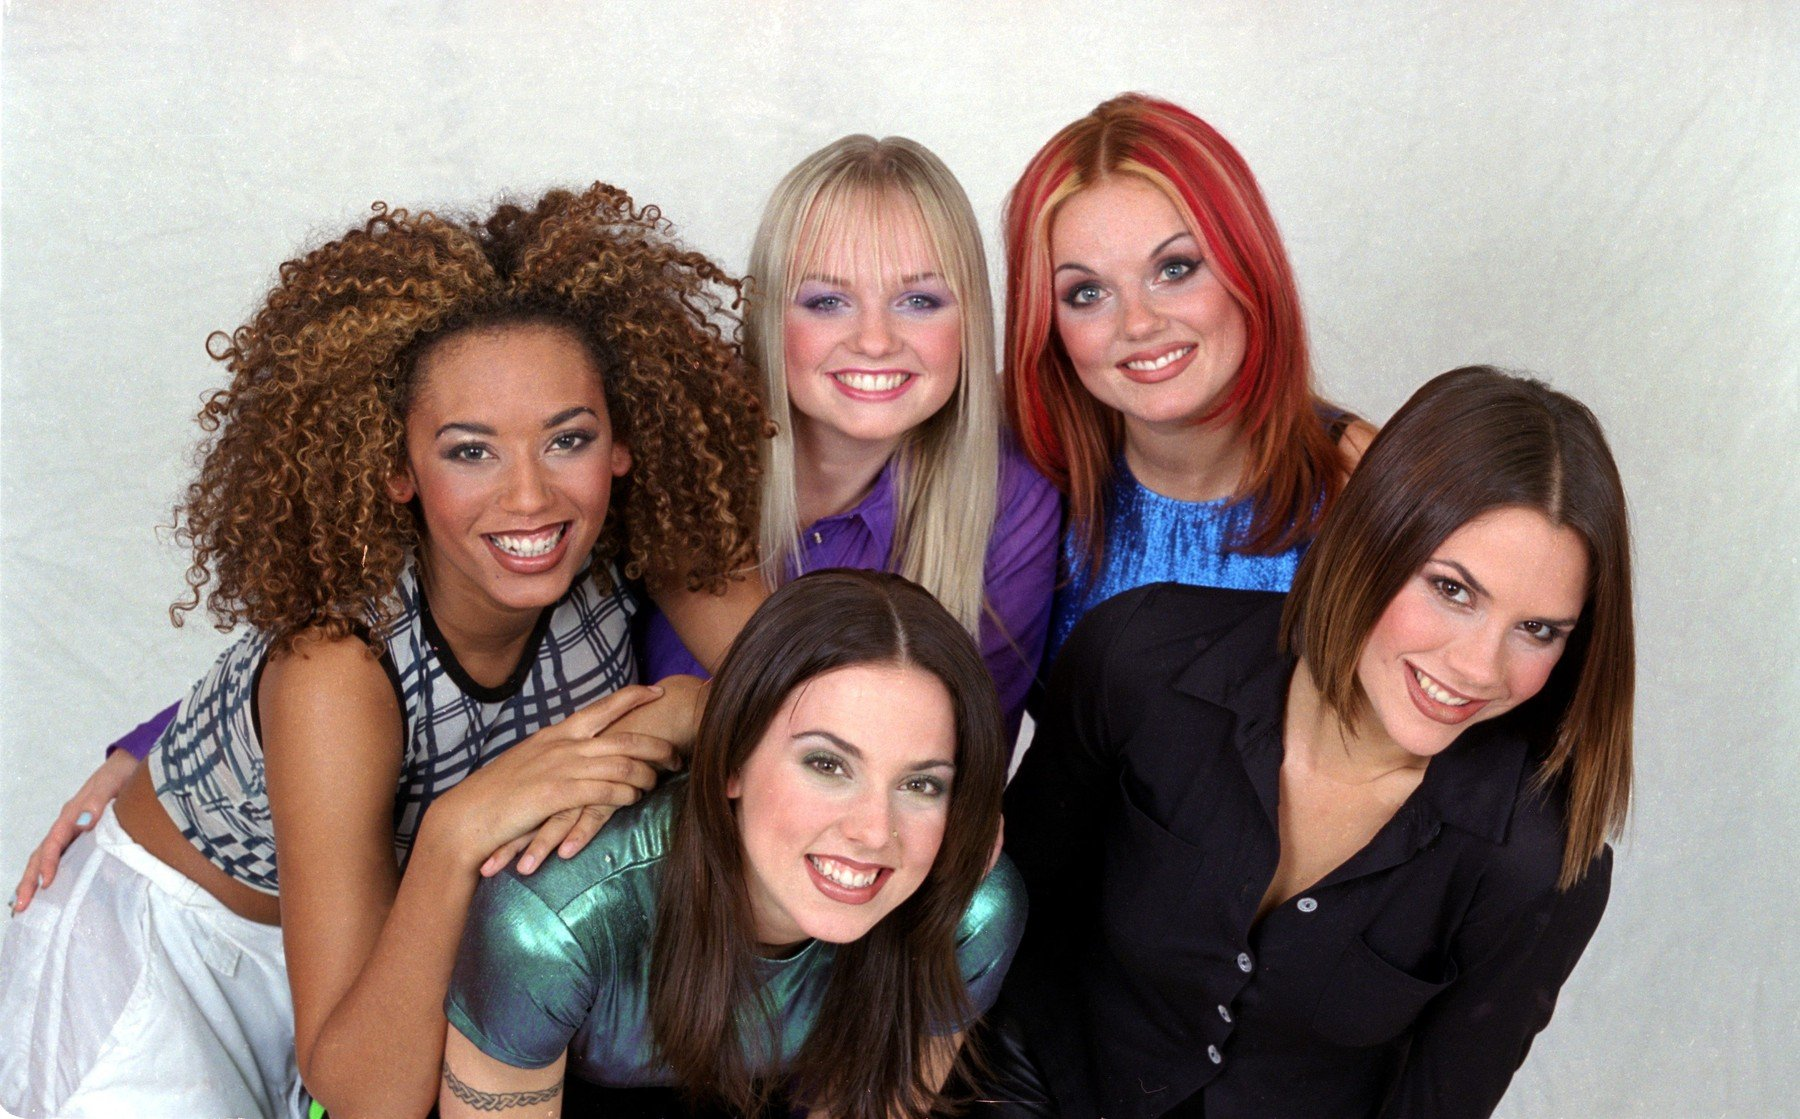 British all girl pop group The Spice Girls pose for a group photograph in the Daily Mirror Studios. They are back ro left to right: Mel B (Scary Spice), Emma Bunton (Baby Spice), Geri Halliwell (Ginger Spice) and  Victoria Adams (Posh Spice). Front is Melanie Chisholm (Sporty Spice). 23rd October 1996., Image: 175232833, License: Rights-managed, Restrictions: , Model Release: no, Credit line: Profimedia, MirrorPix